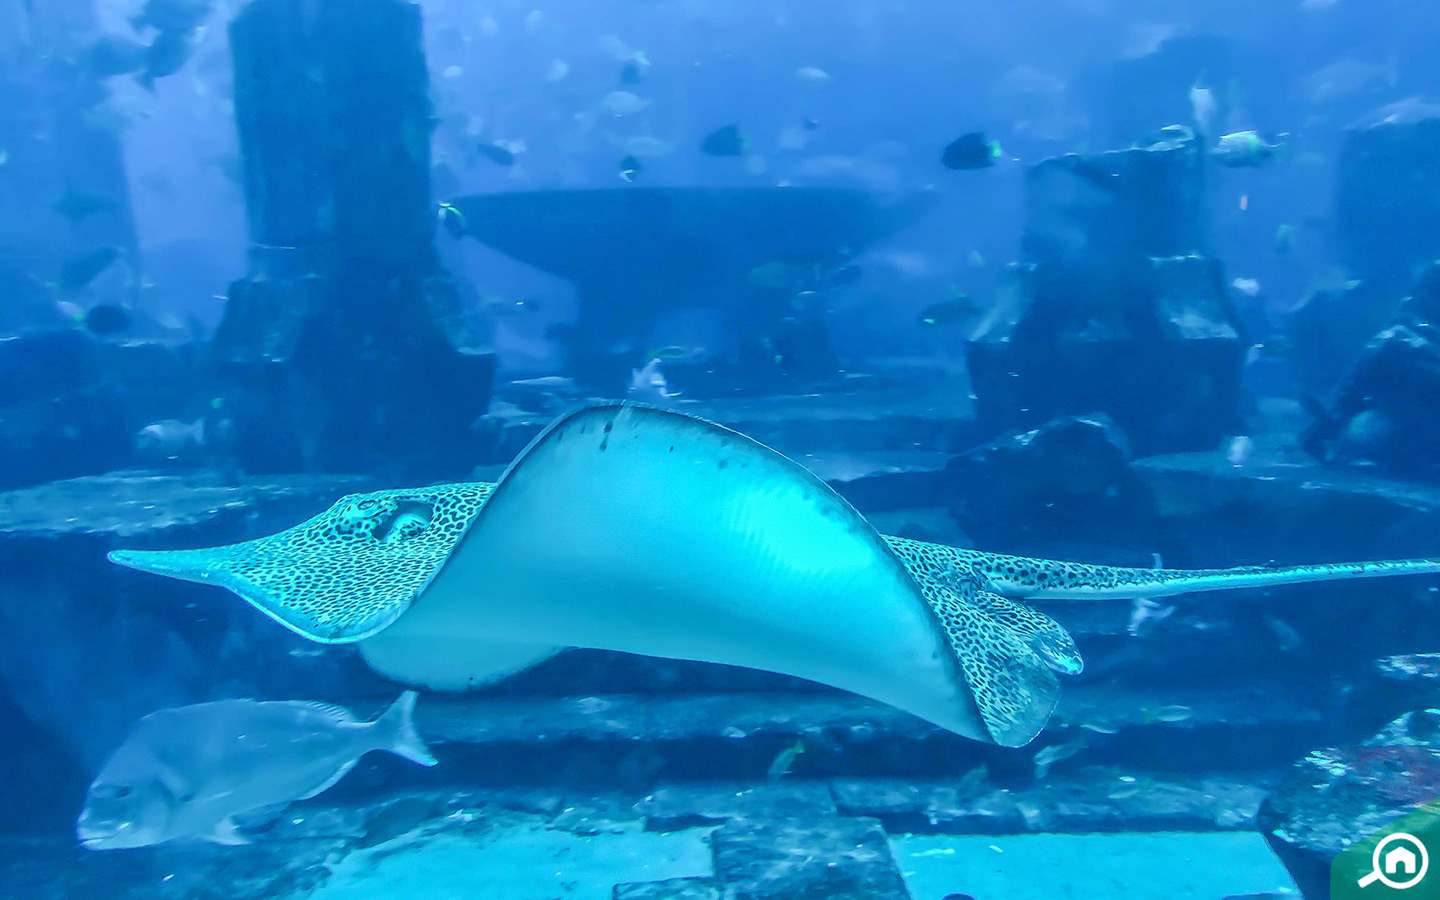 A sting ray and other animals